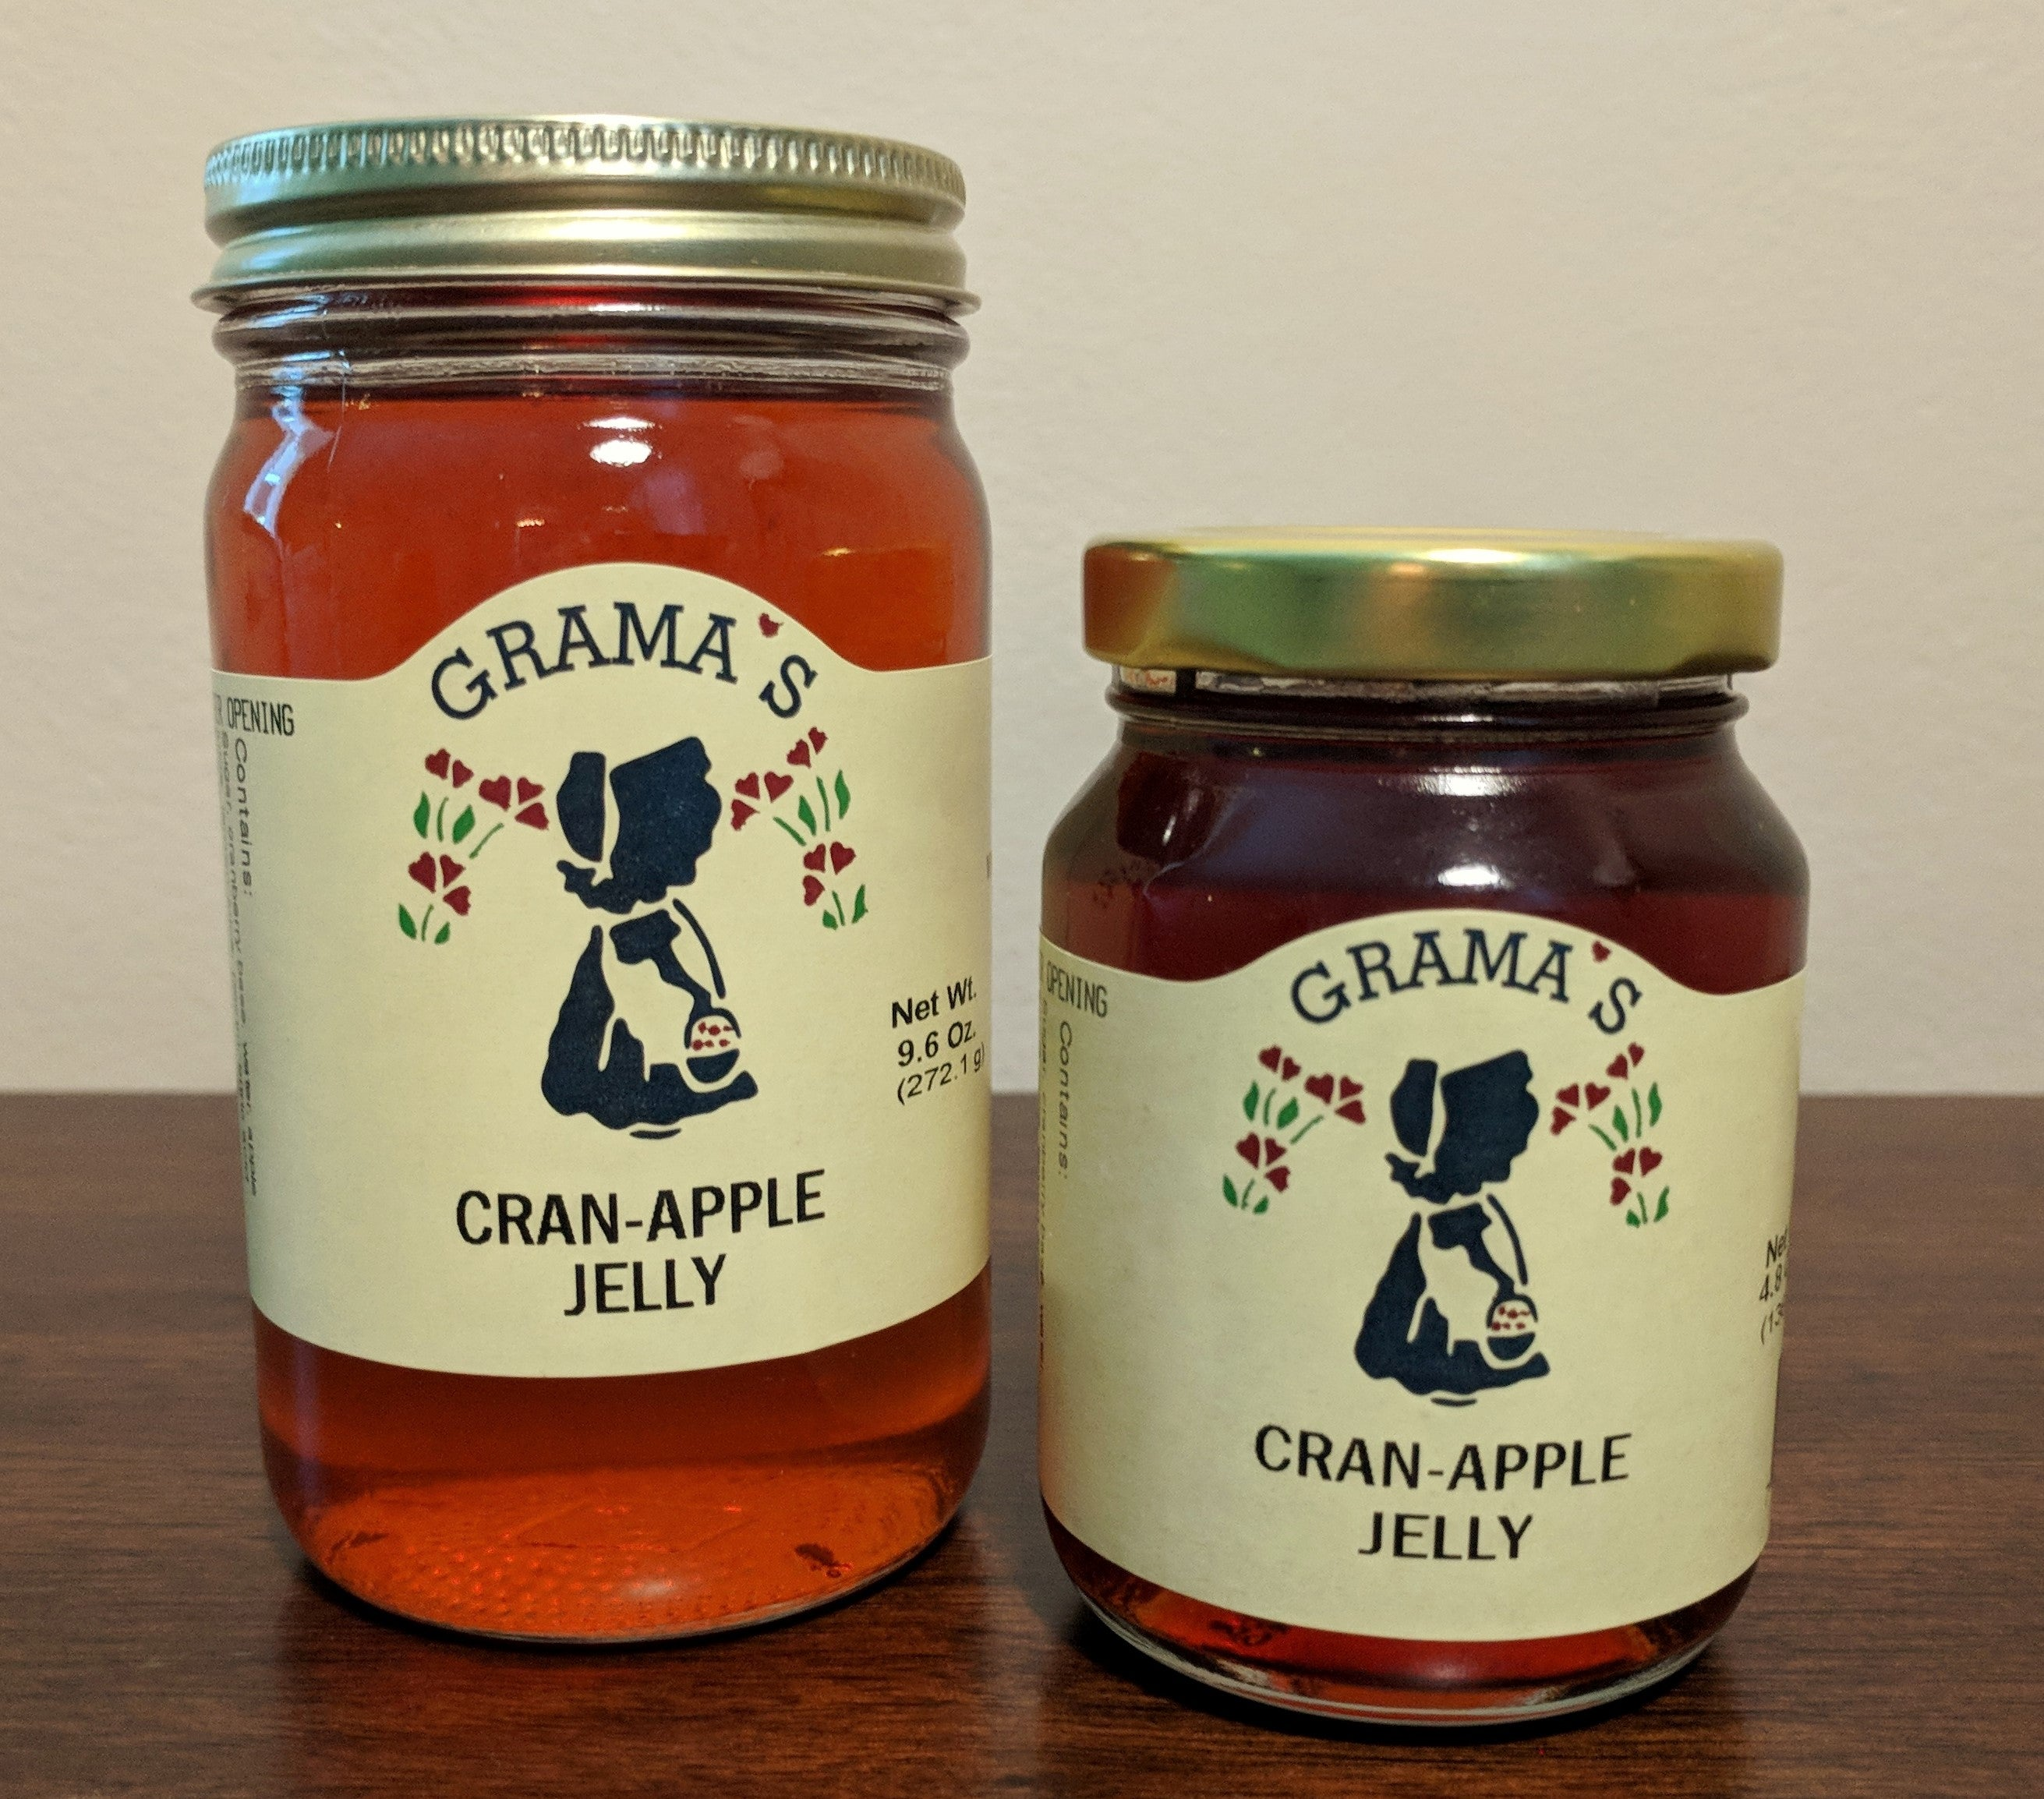 Cran-Apple Jelly